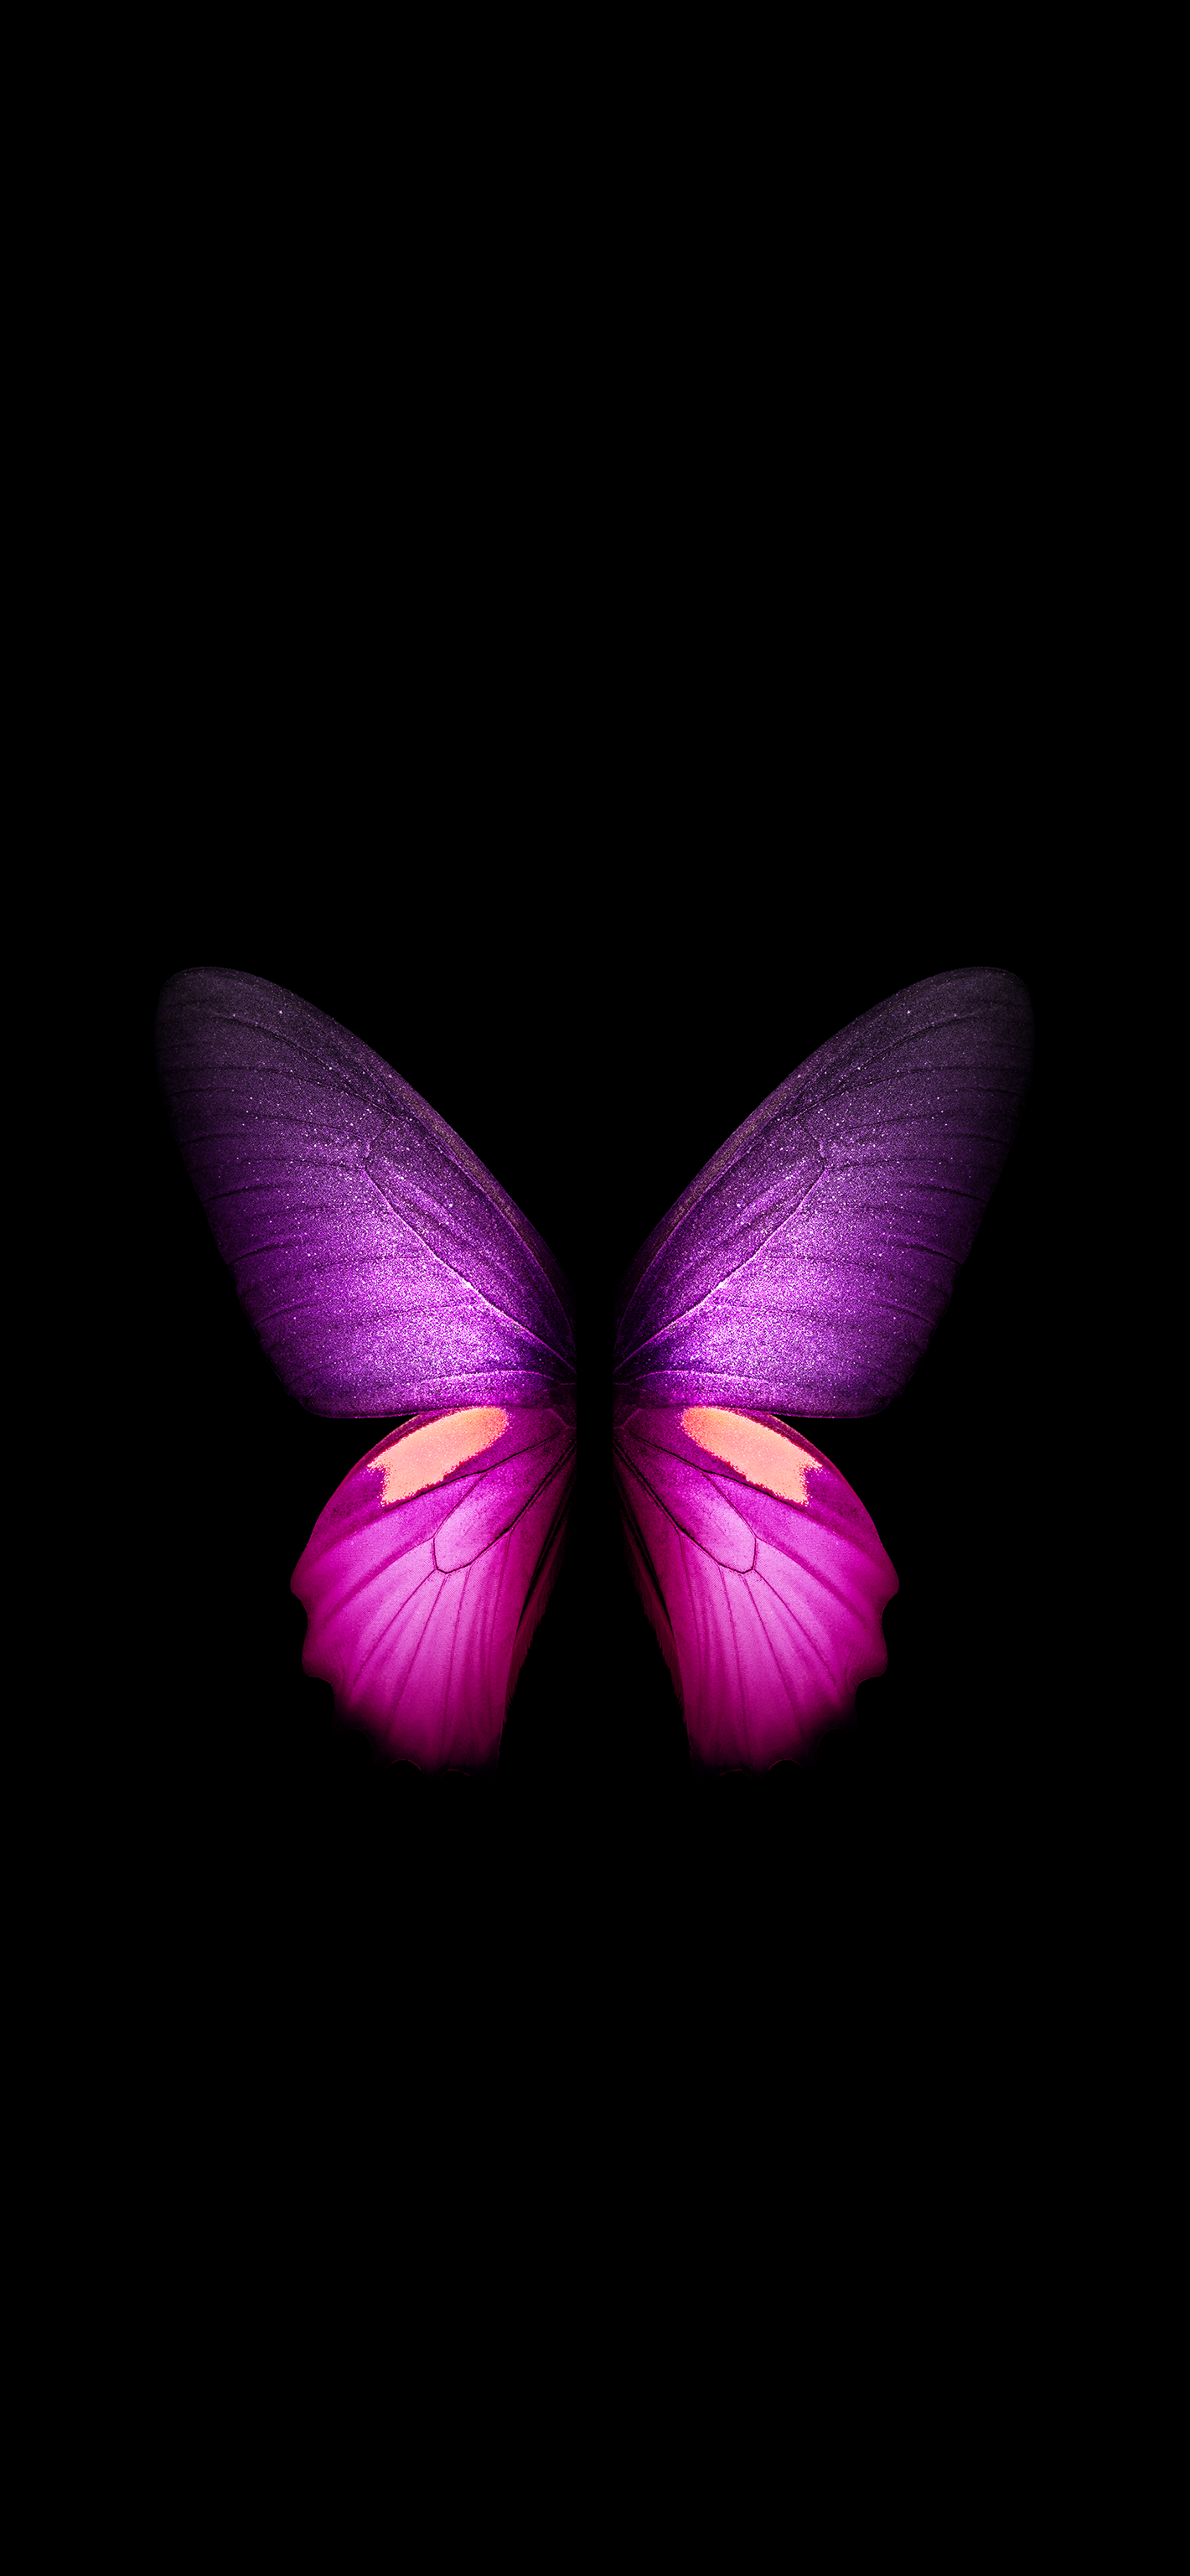 Butterfly Galaxy Fold Black Live Wallpaper Wallpapers Central